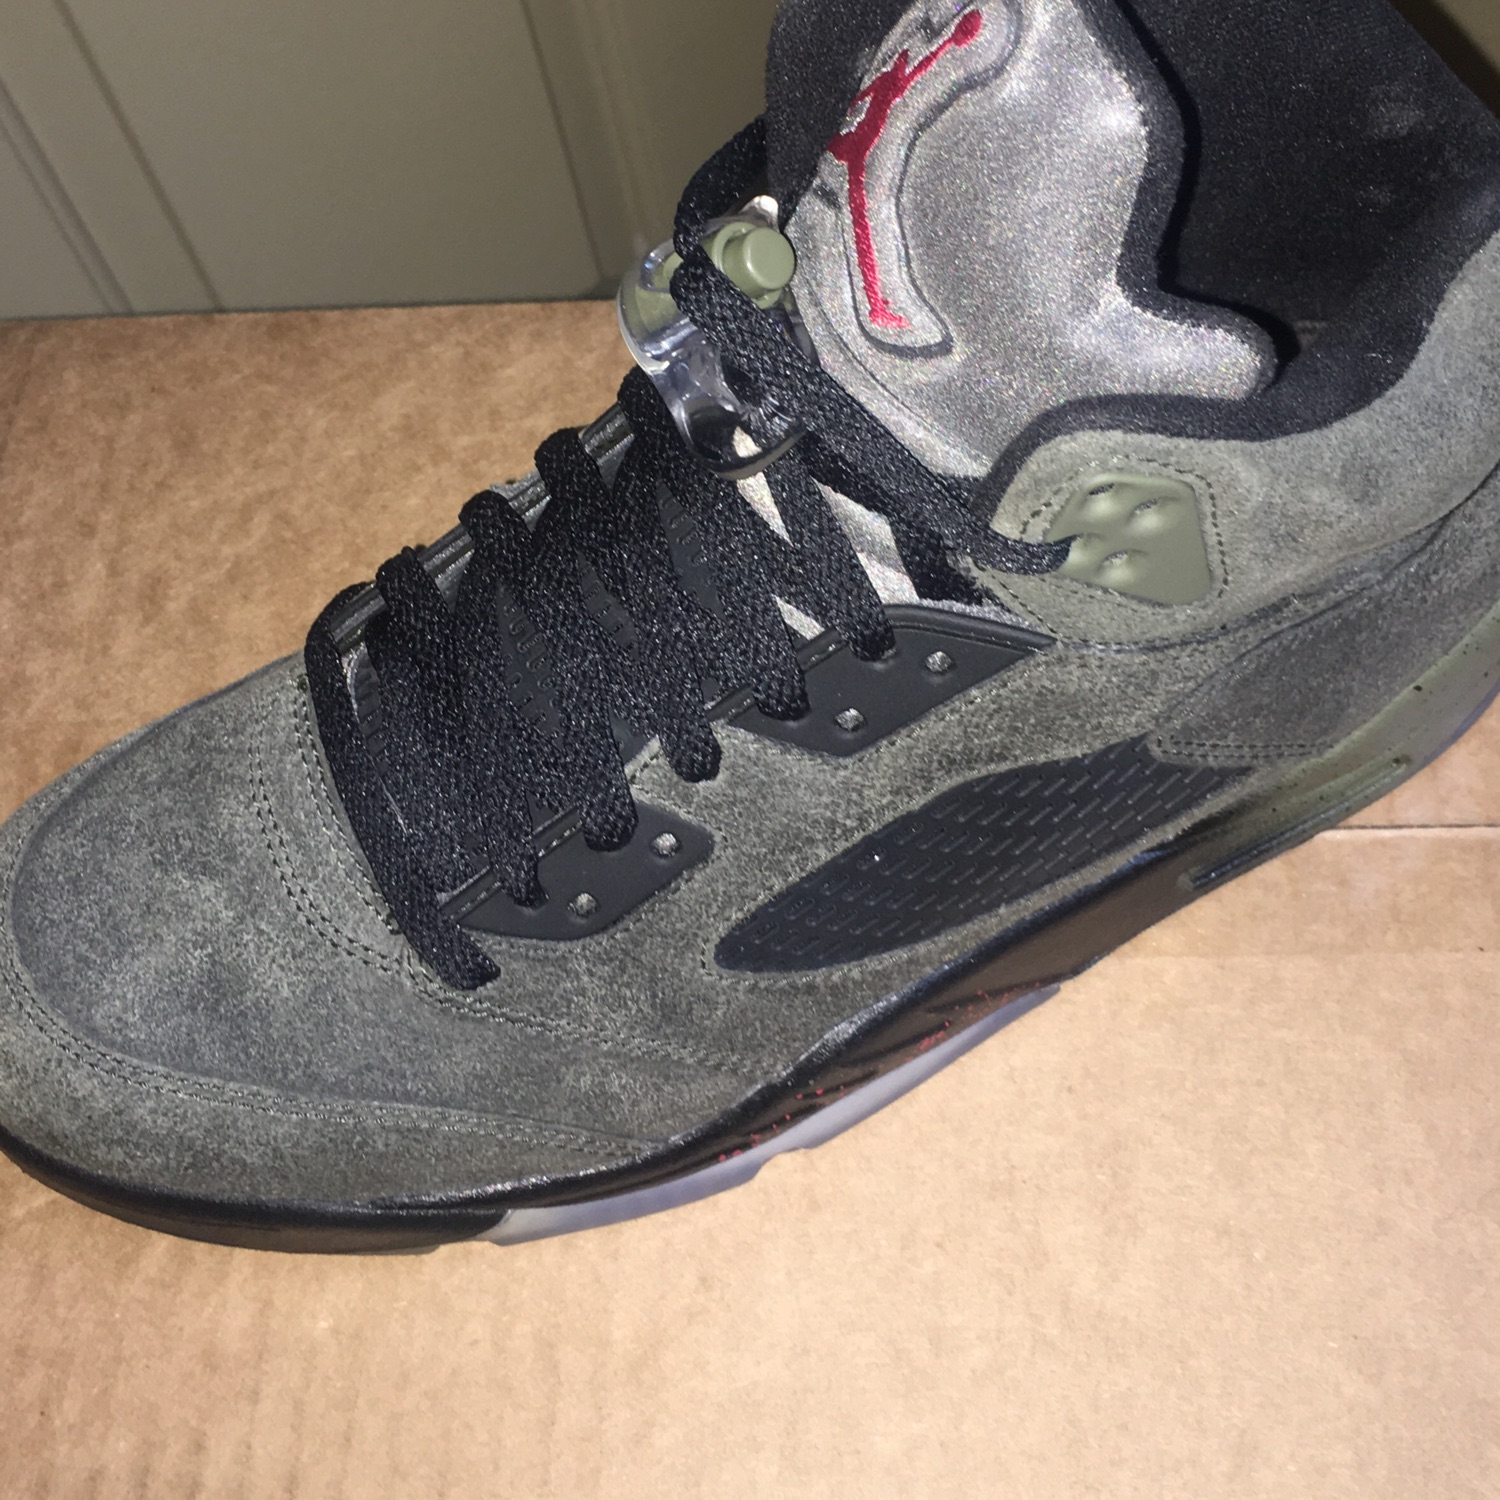 buy popular 9d960 087c1 Air Jordan 5 'Fear' Army Olive Green Size 9 No Box